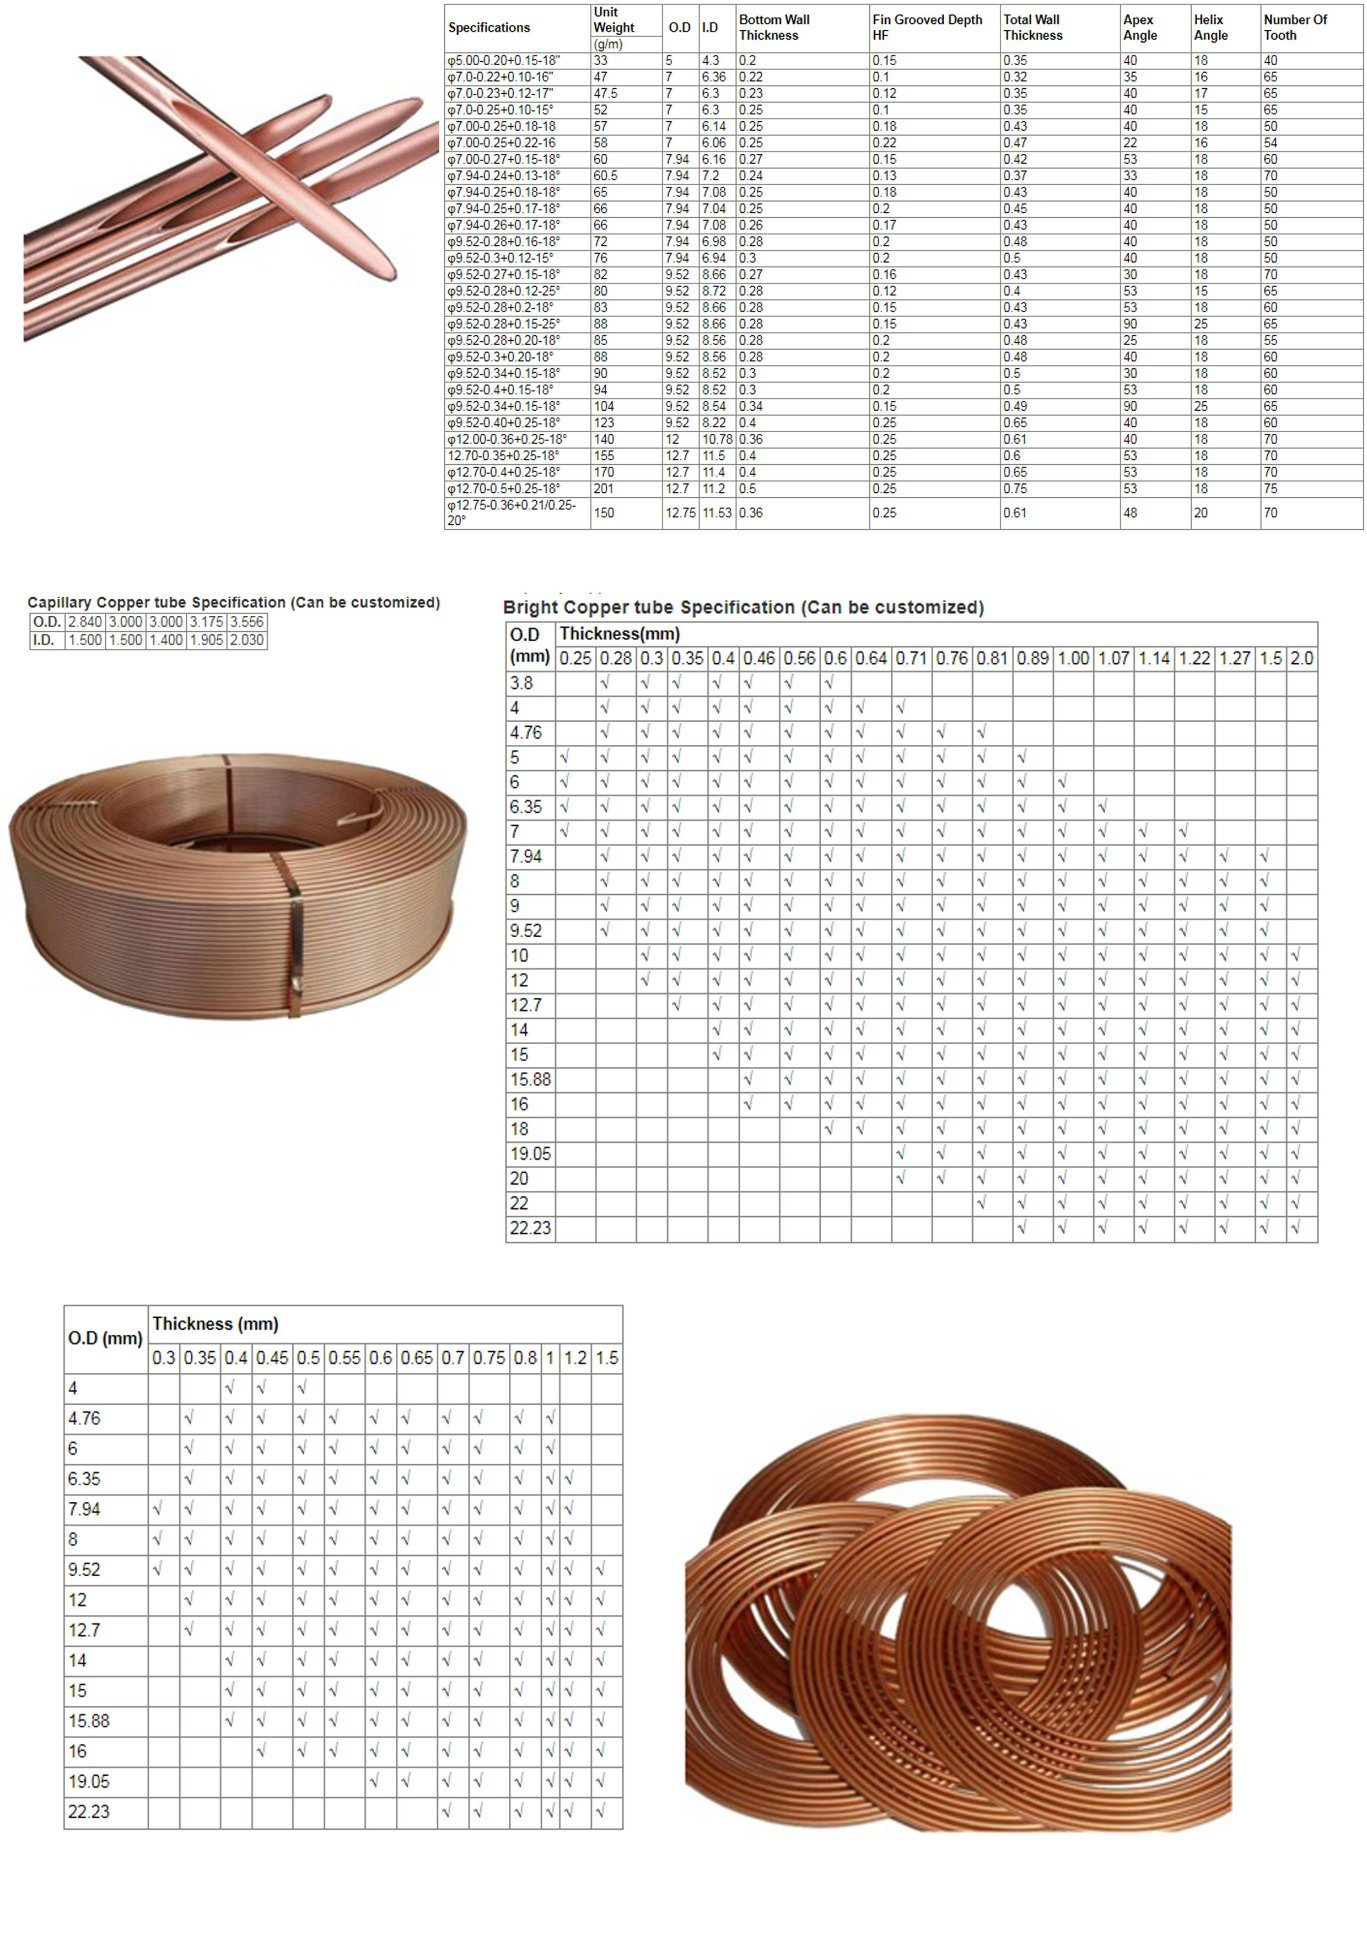 T2 copper coil tube 6 * 1 seamless copper tube for air conditioner copper tube outer diameter 6mm wall thickness 1mm inner diame